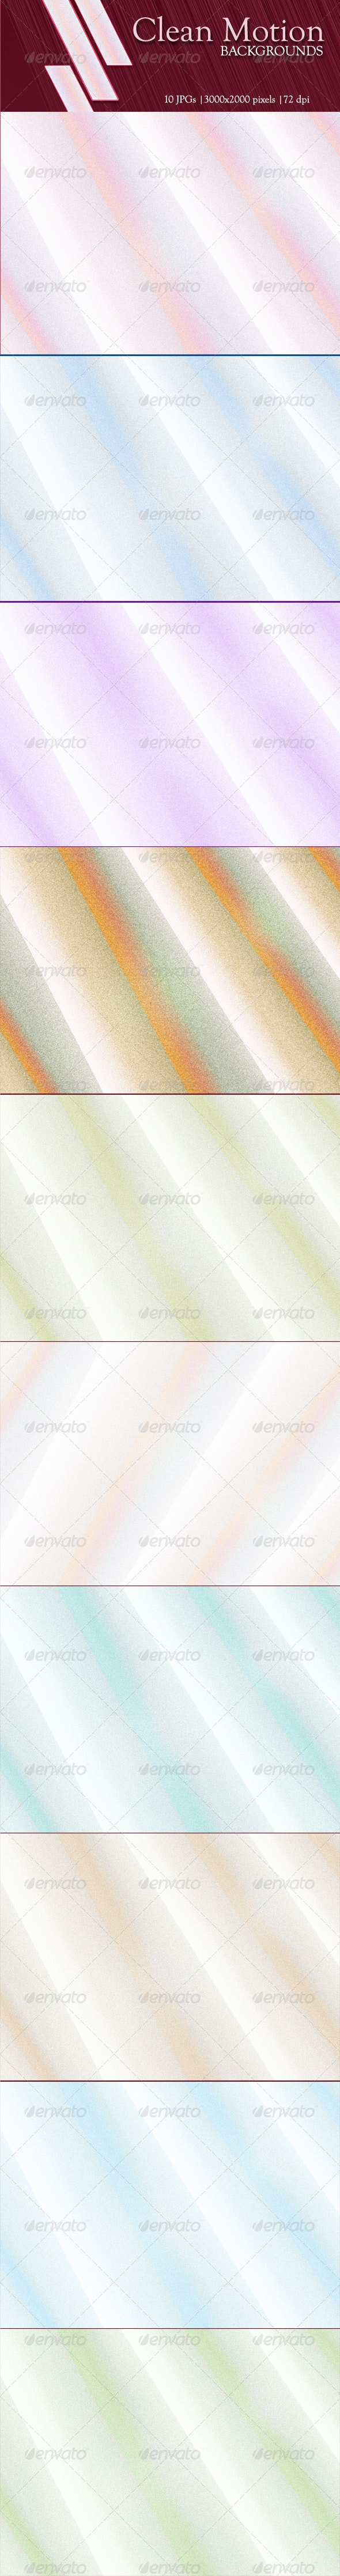 10 Clean Motion Backgrounds - Abstract Backgrounds